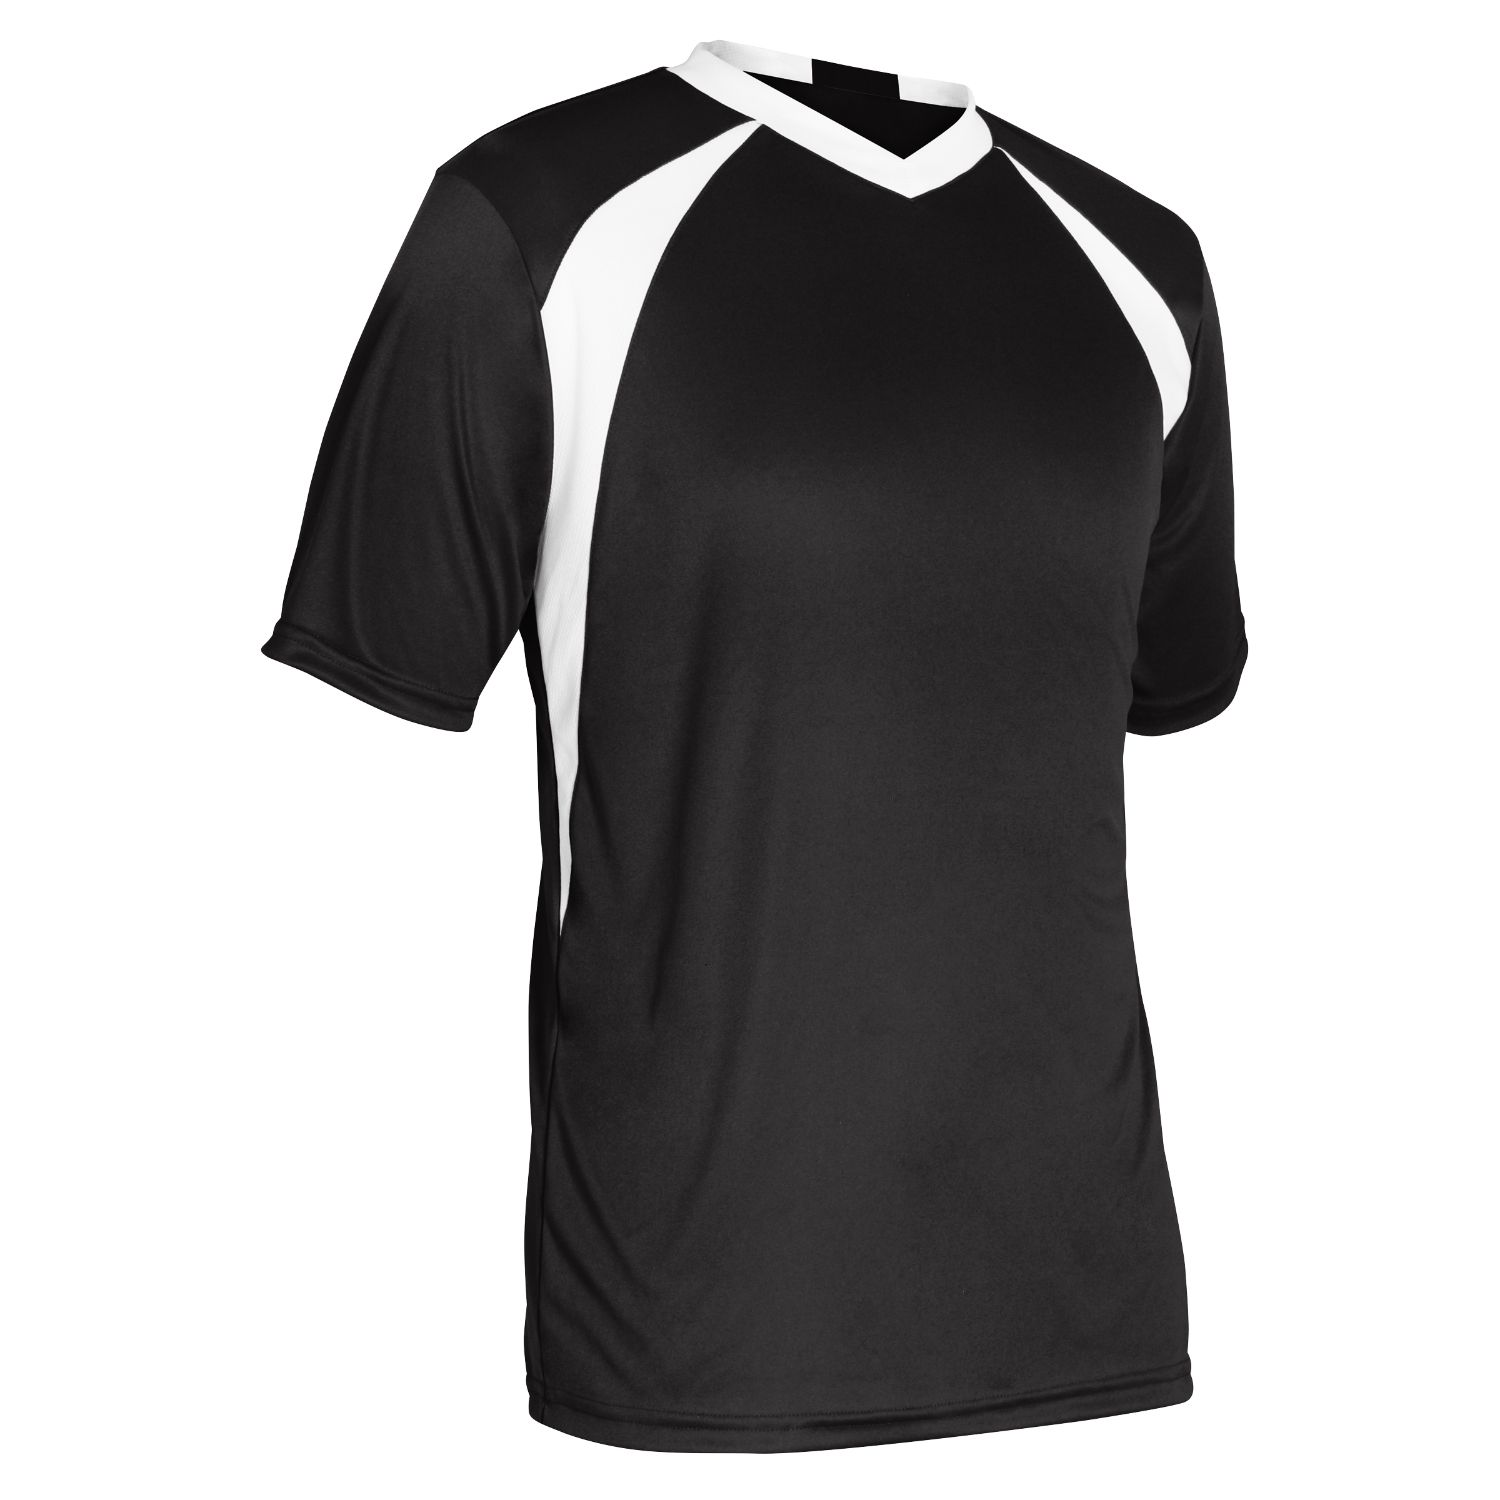 Champro Adult Sweeper Soccer Jersey Black White Small